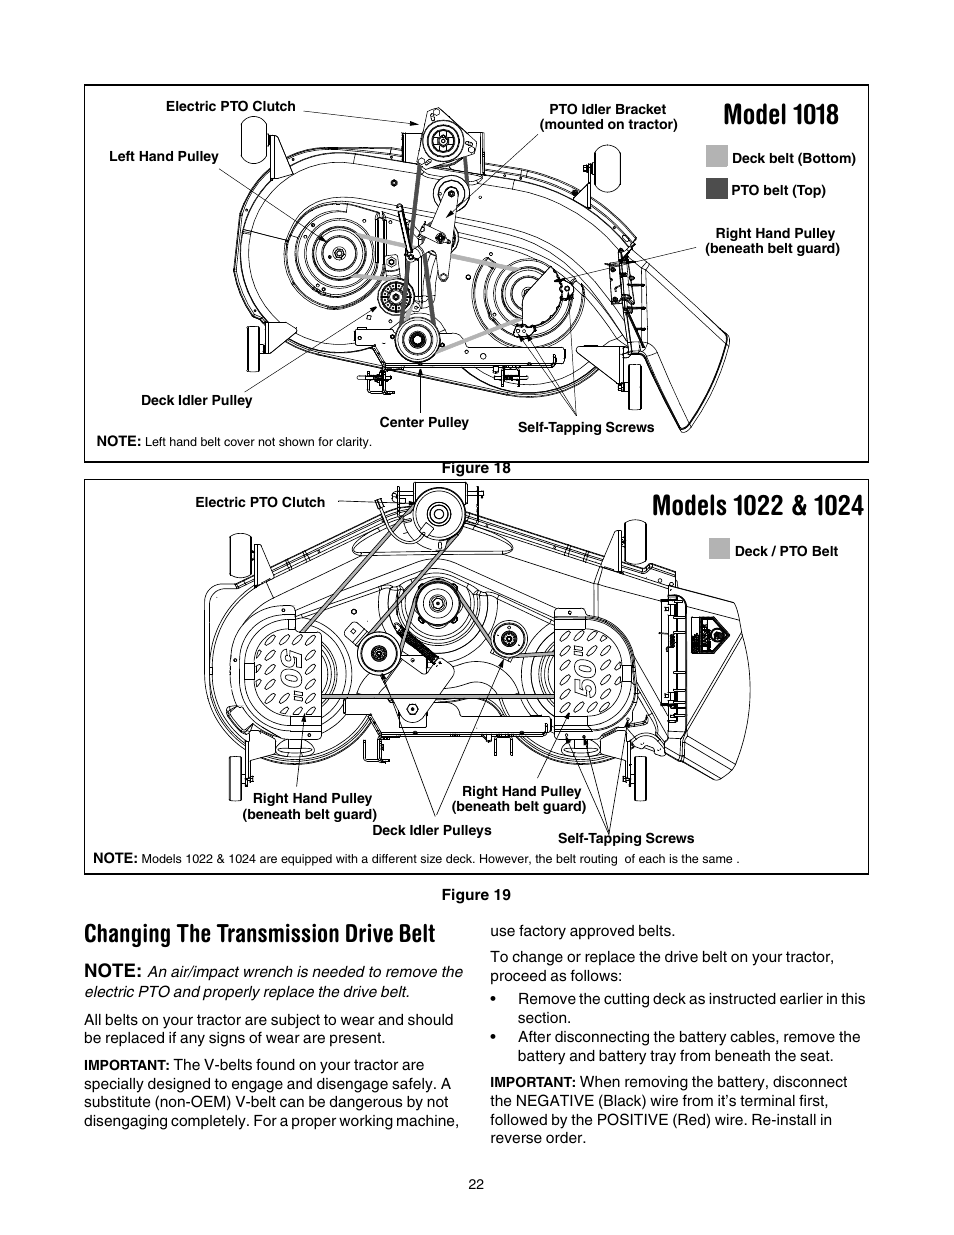 Model 1018, Changing the transmission drive belt | Cub Cadet LT1022 User  Manual | Page 22 / 28